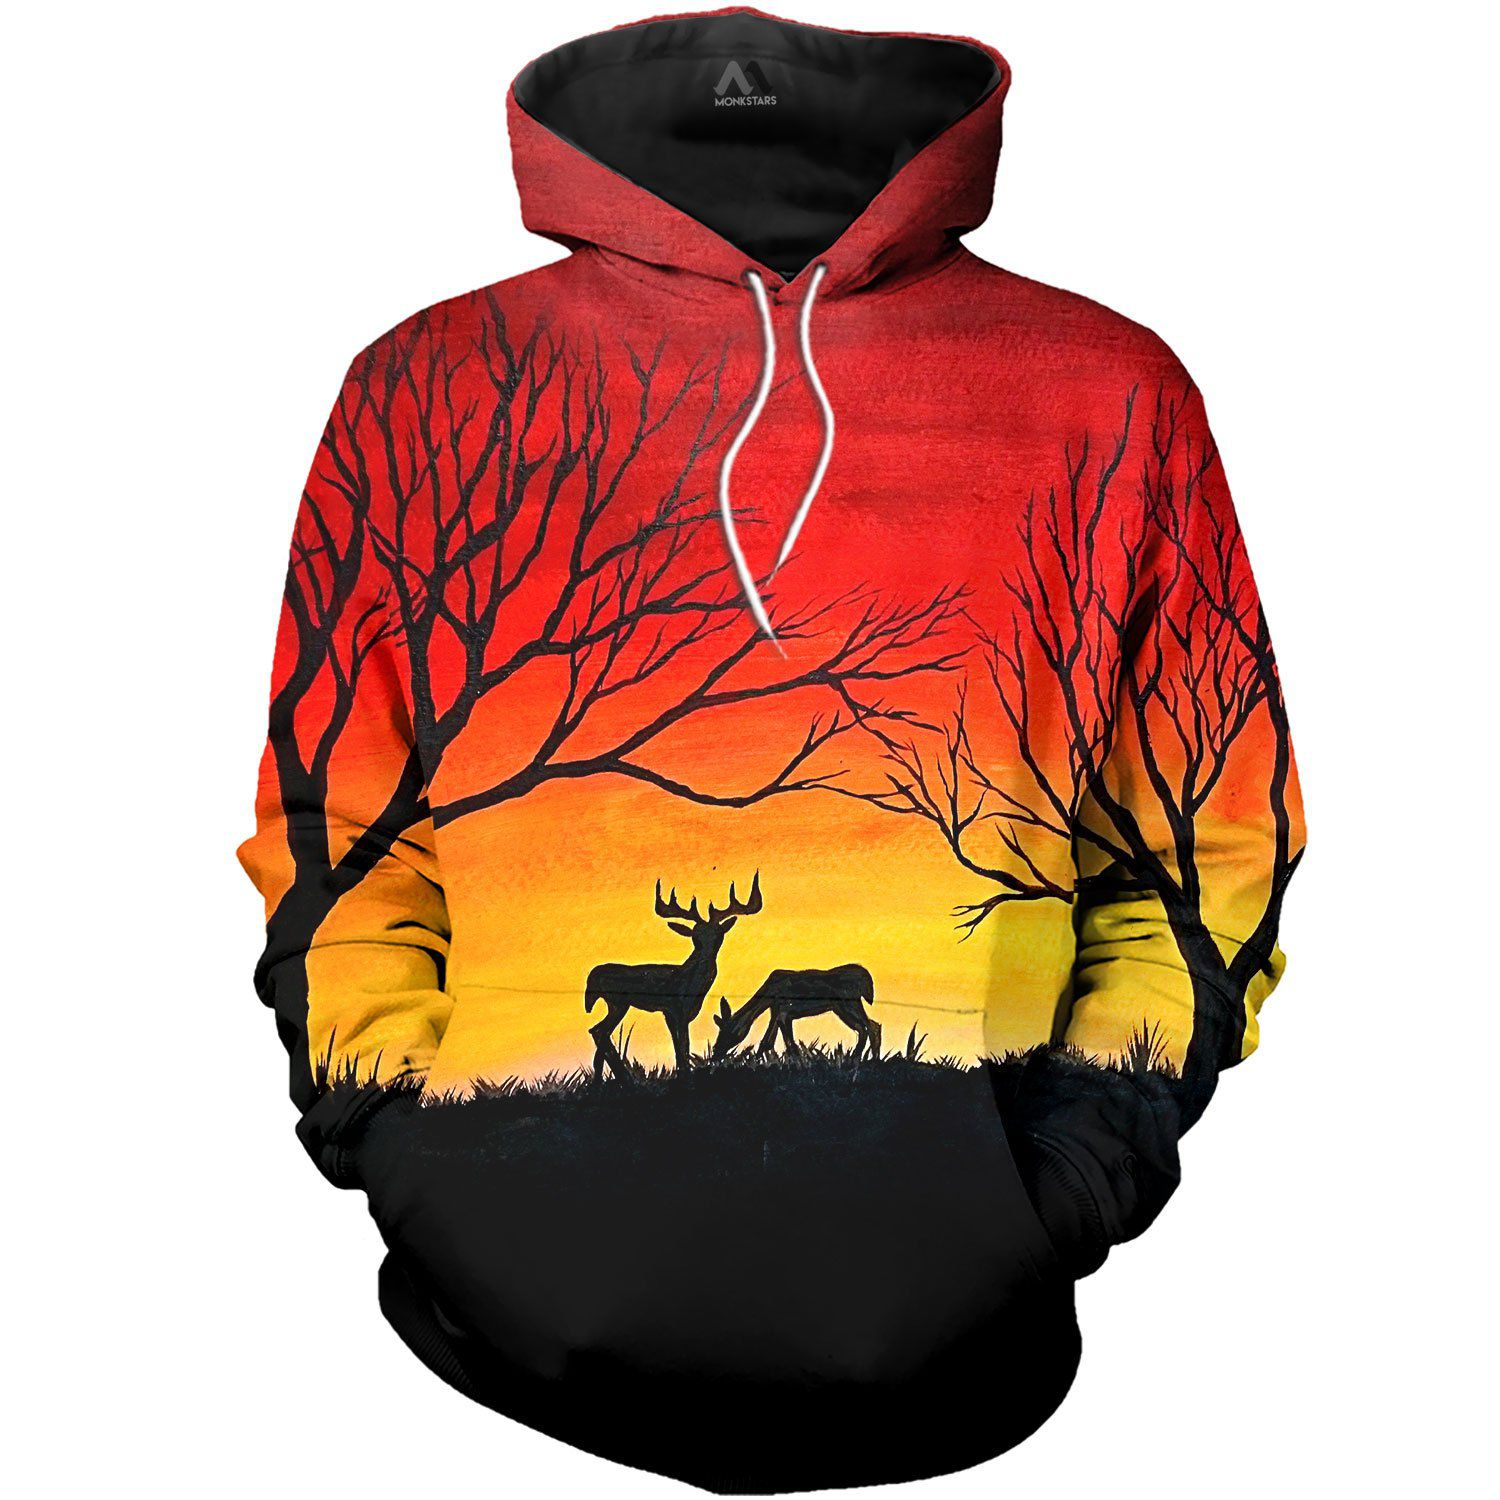 52f7aec7f2b8 Deer At Sunset Acrylic Paintings 3D All Over Printed Shirts For Men   Women